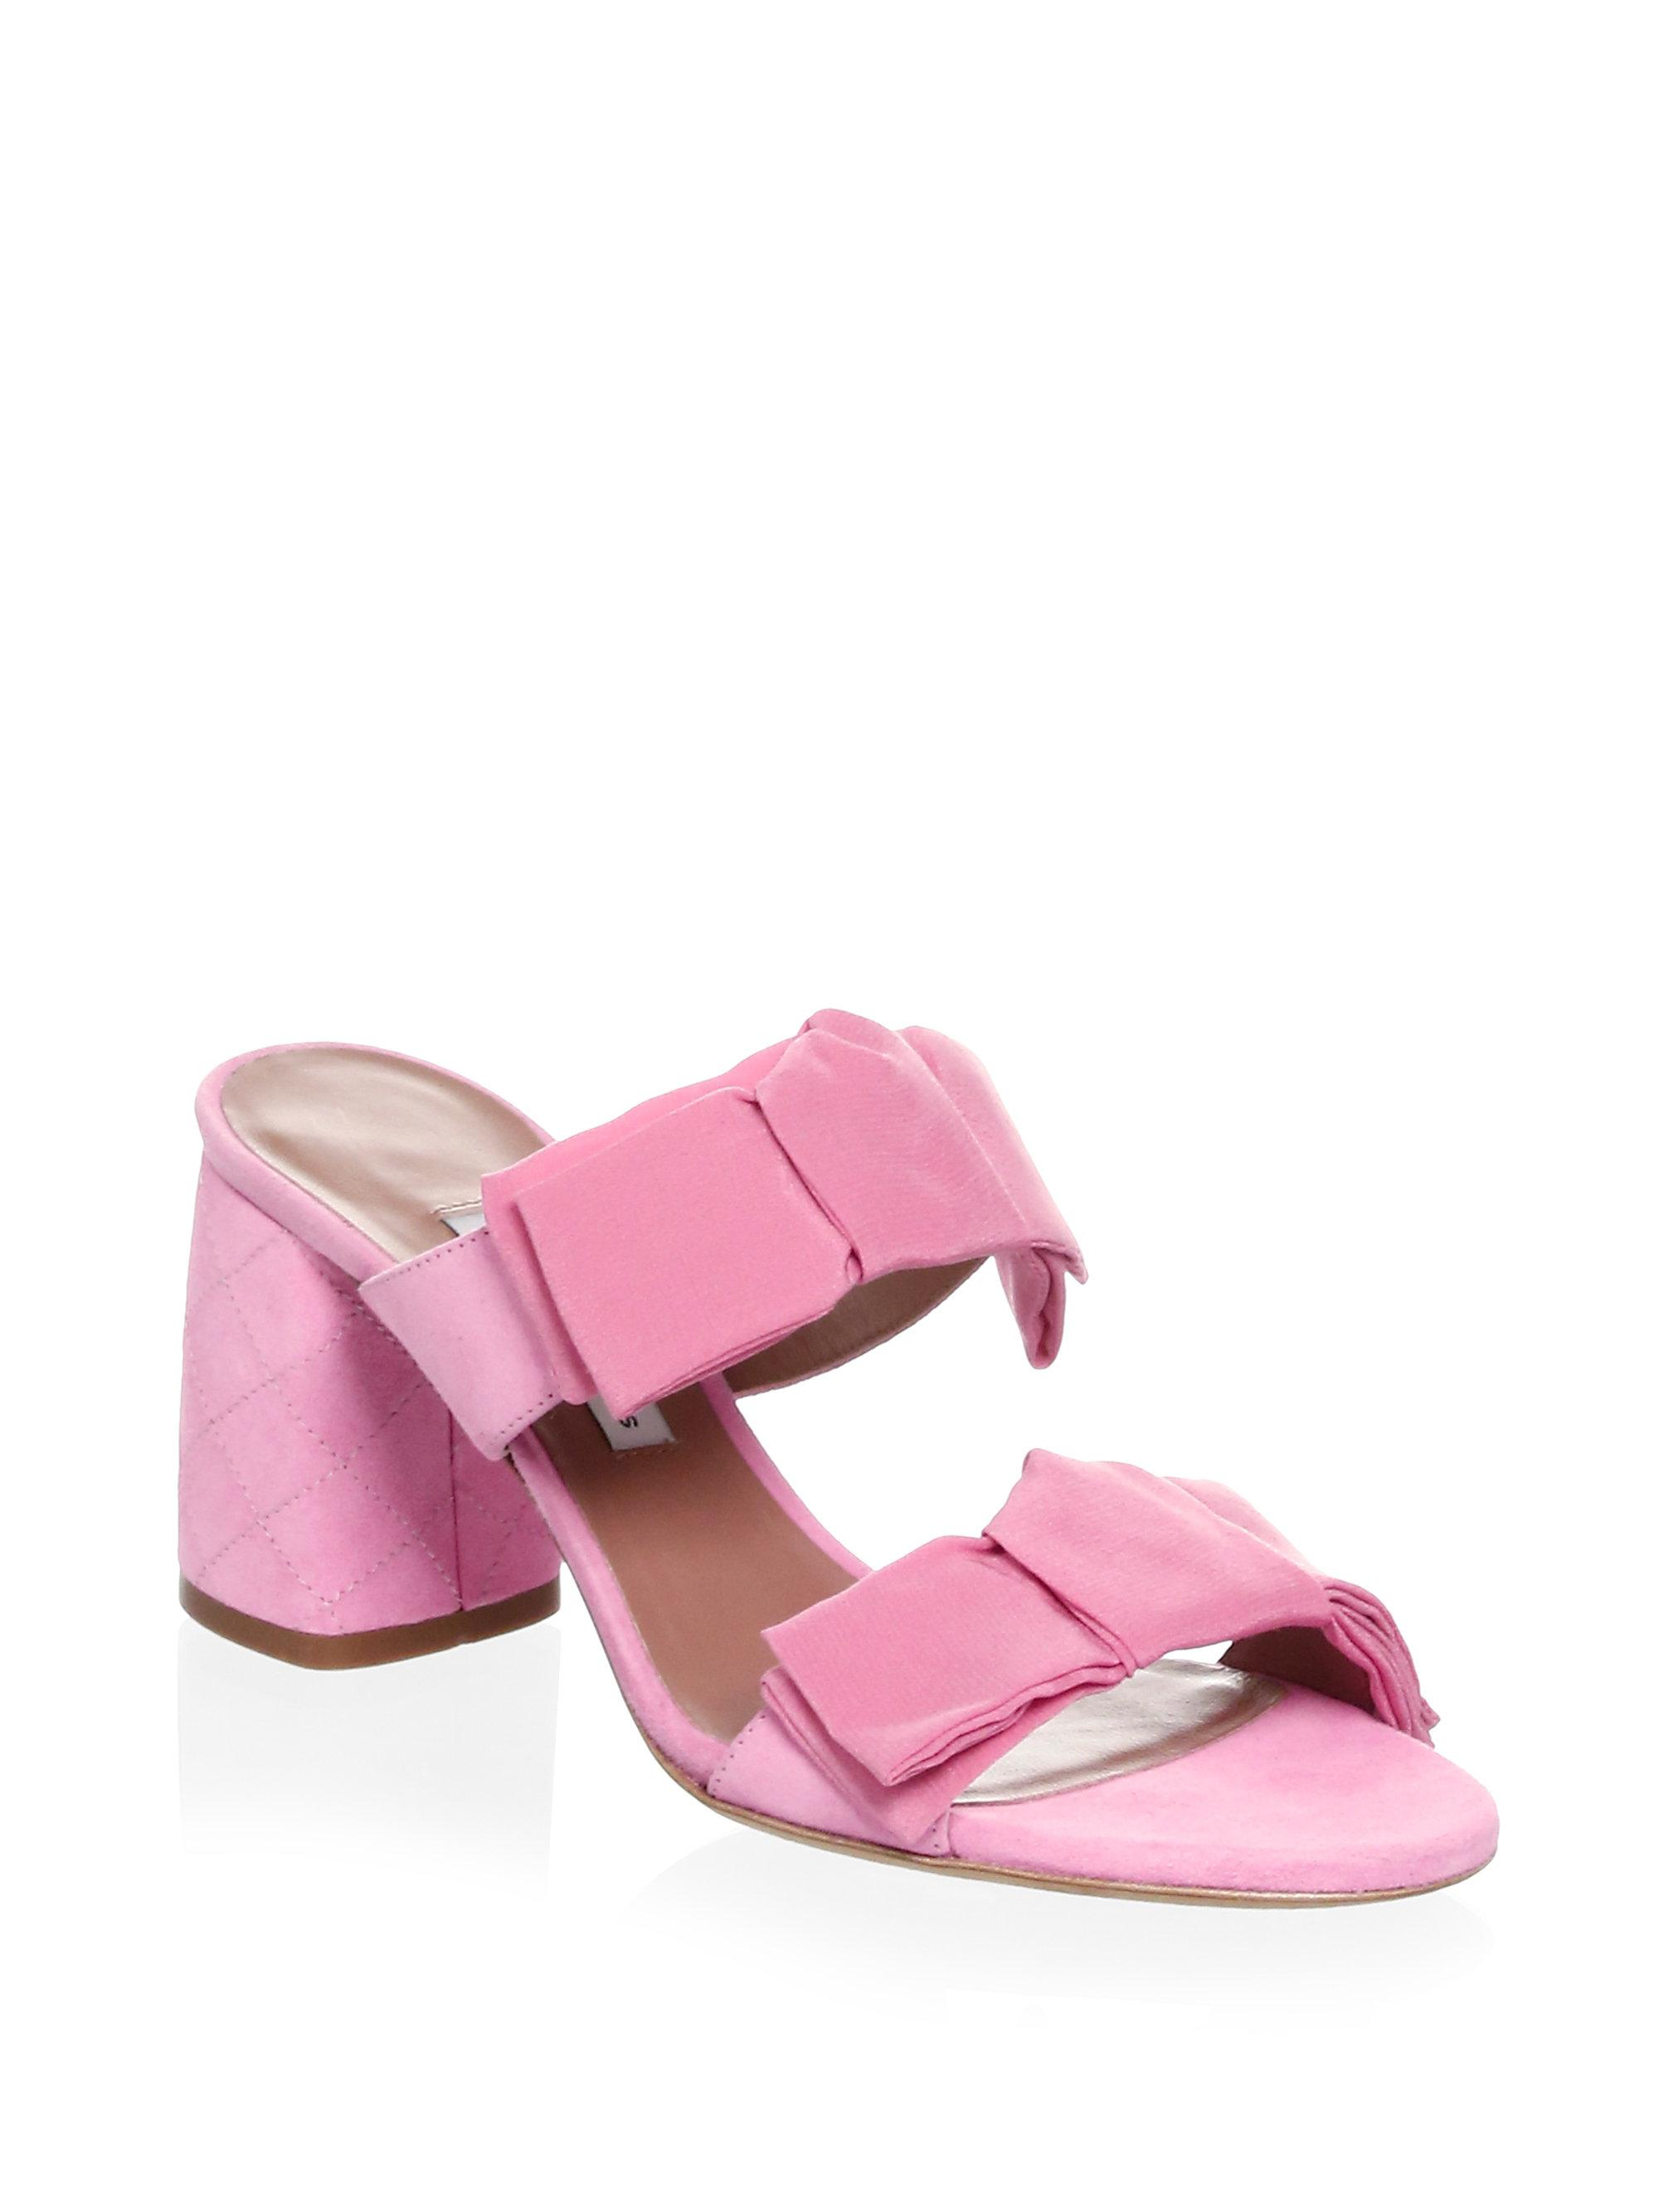 Tabitha Simmons Barbi Suede Slides